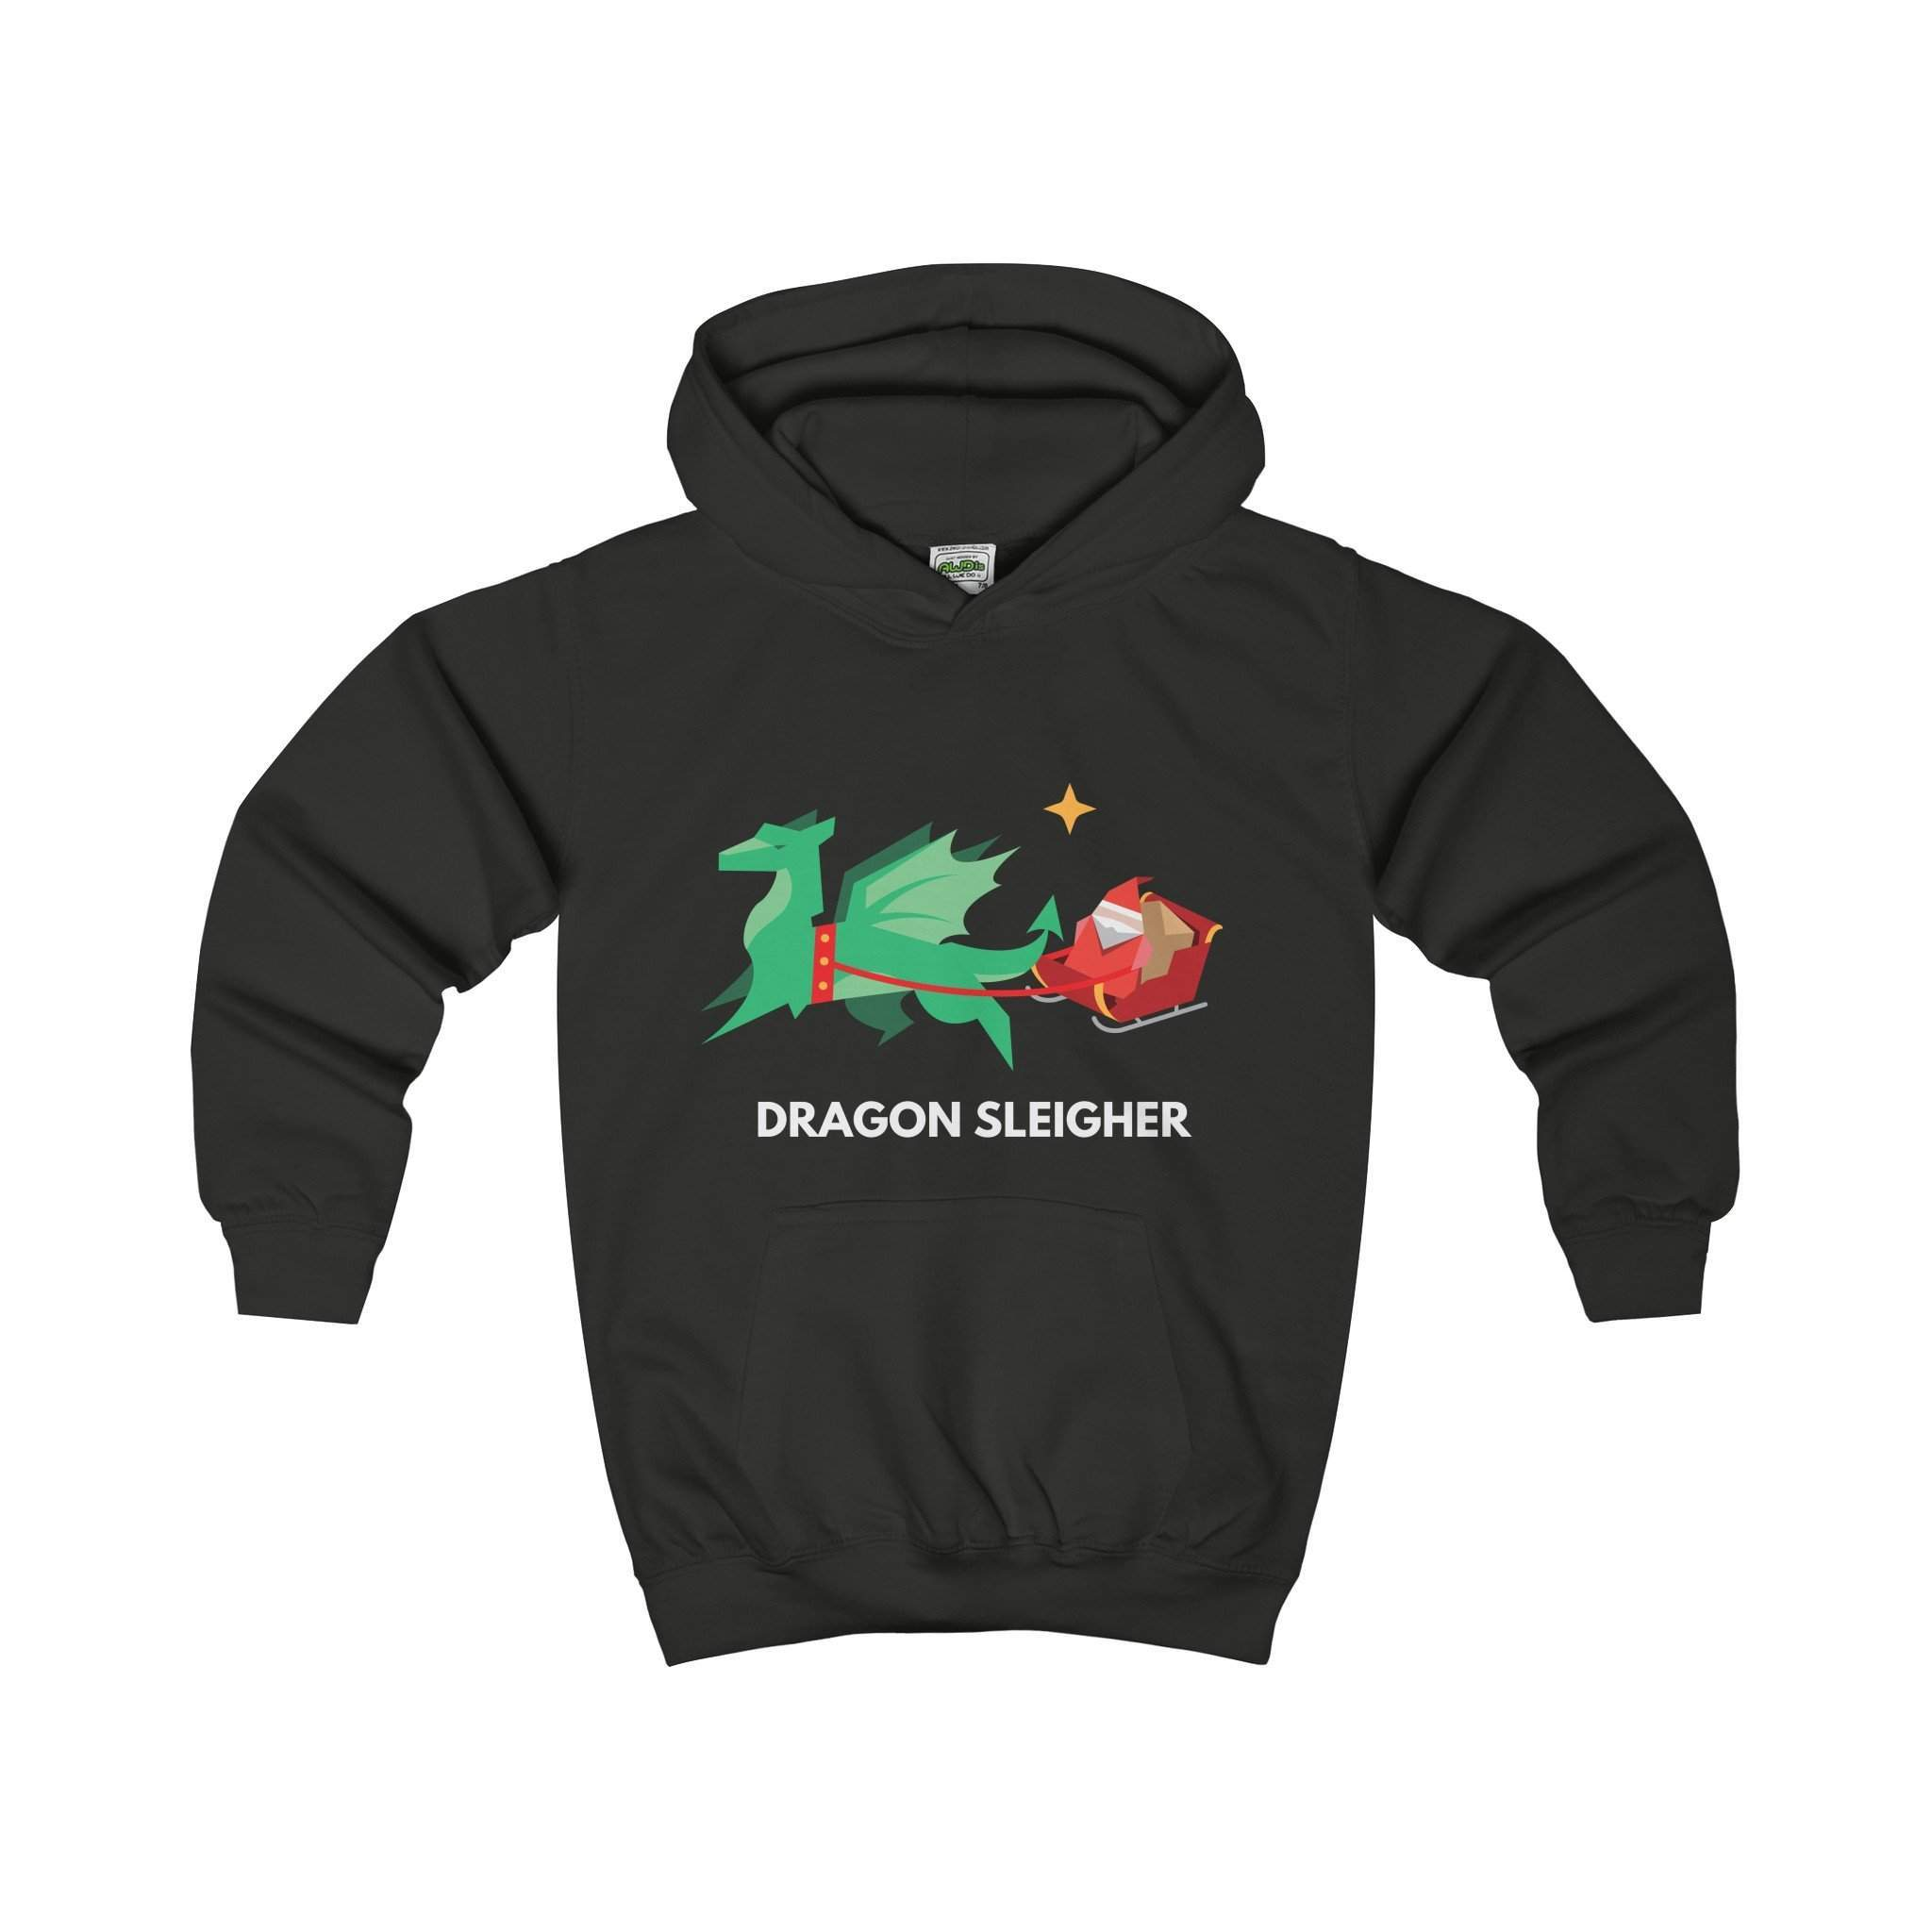 Dragon Sleigher Kids' Christmas Hoodie-Kids clothes-Jolly Christmas Jumper